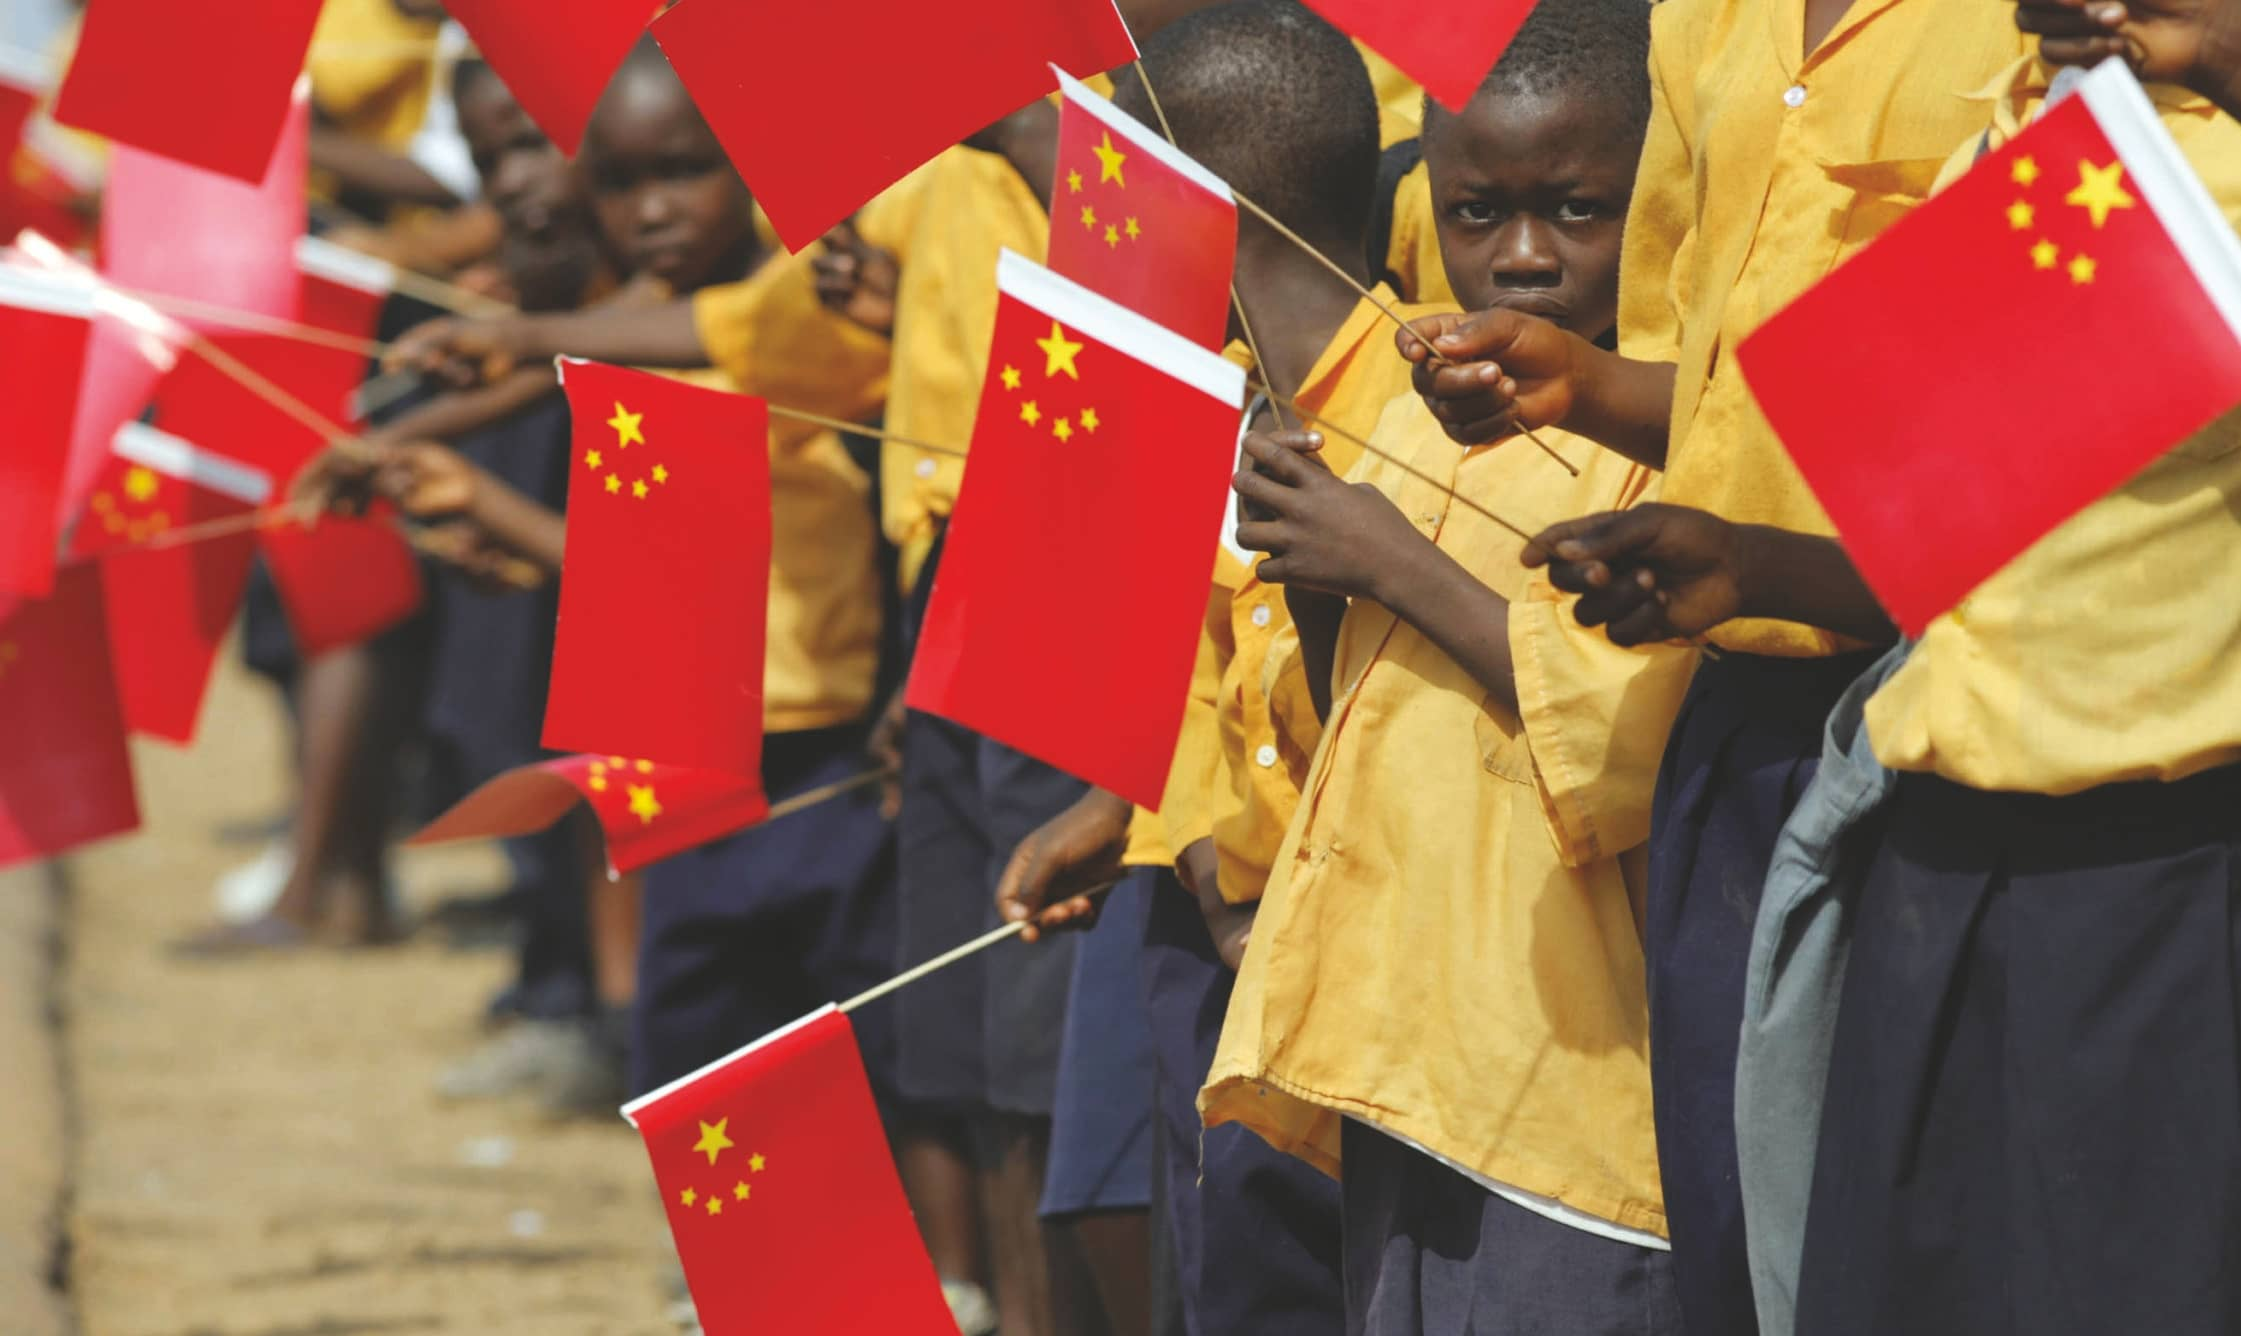 SOFT-POWER DIPLOMACY OF CHINA IN THIRD WORLD COUNTRIES IN THE TIMES OF COVID-19